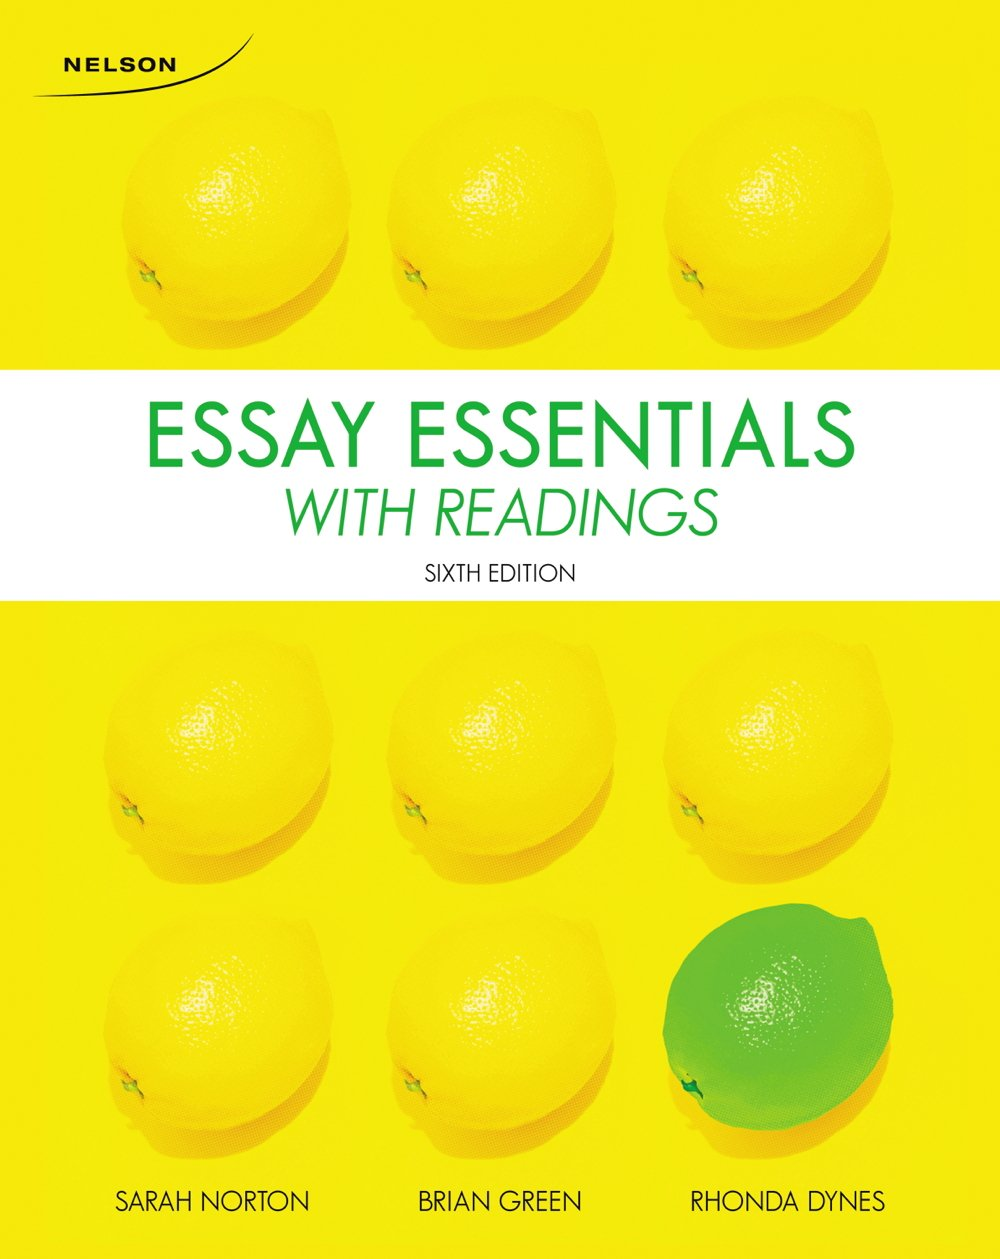 essay essentials readings sarah norton brian green rhonda essay essentials readings sarah norton brian green rhonda dynes 9780176531621 books ca